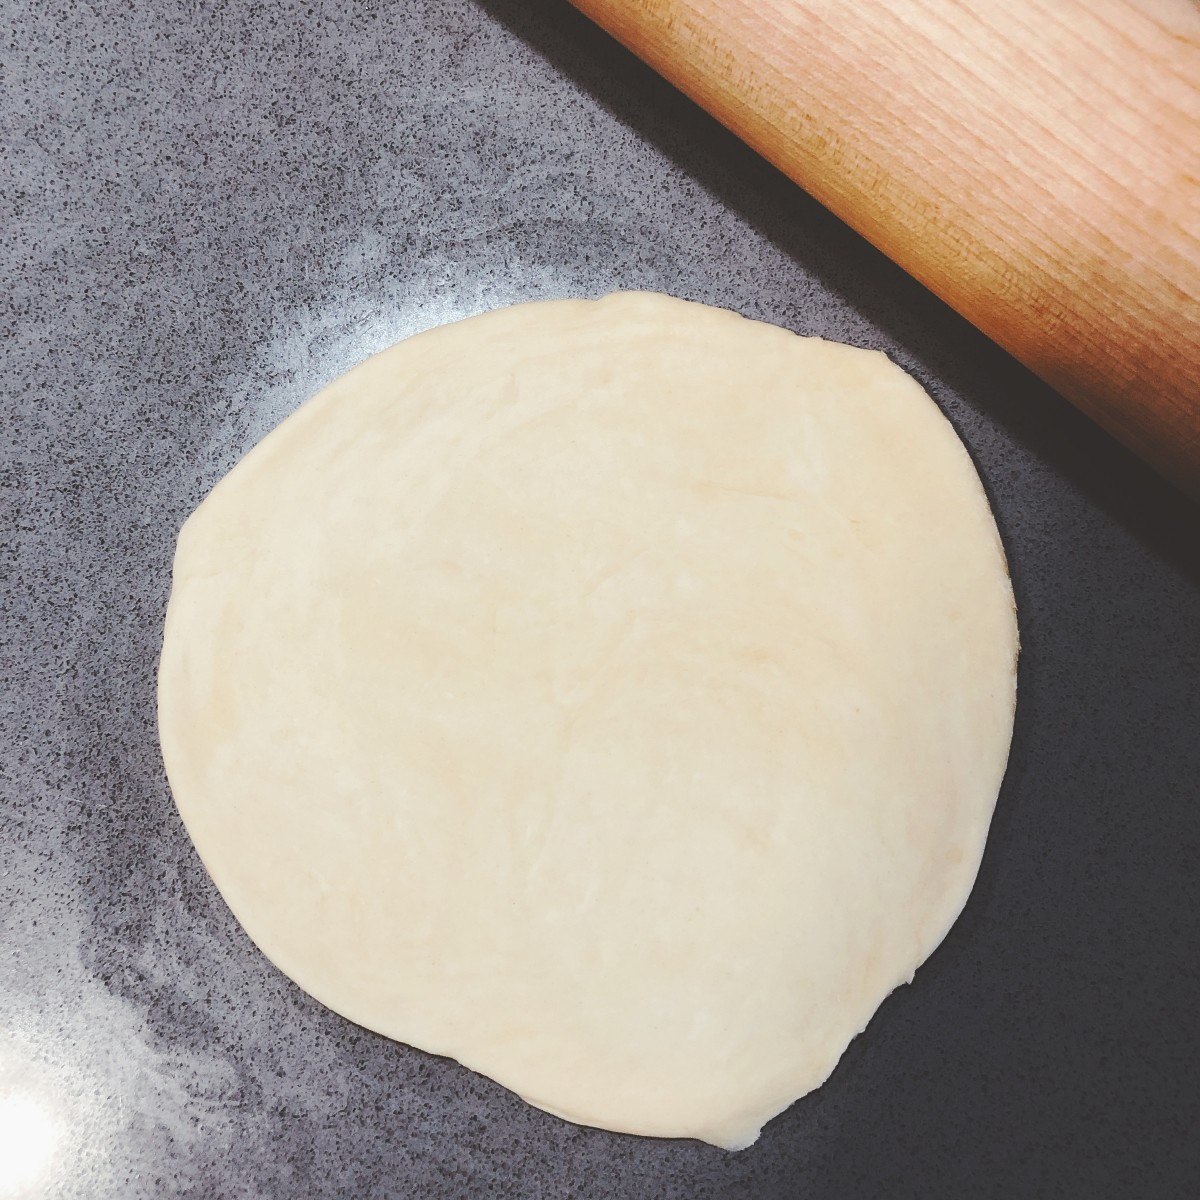 Use a rolling pin to stretch the dough as thin as you can.